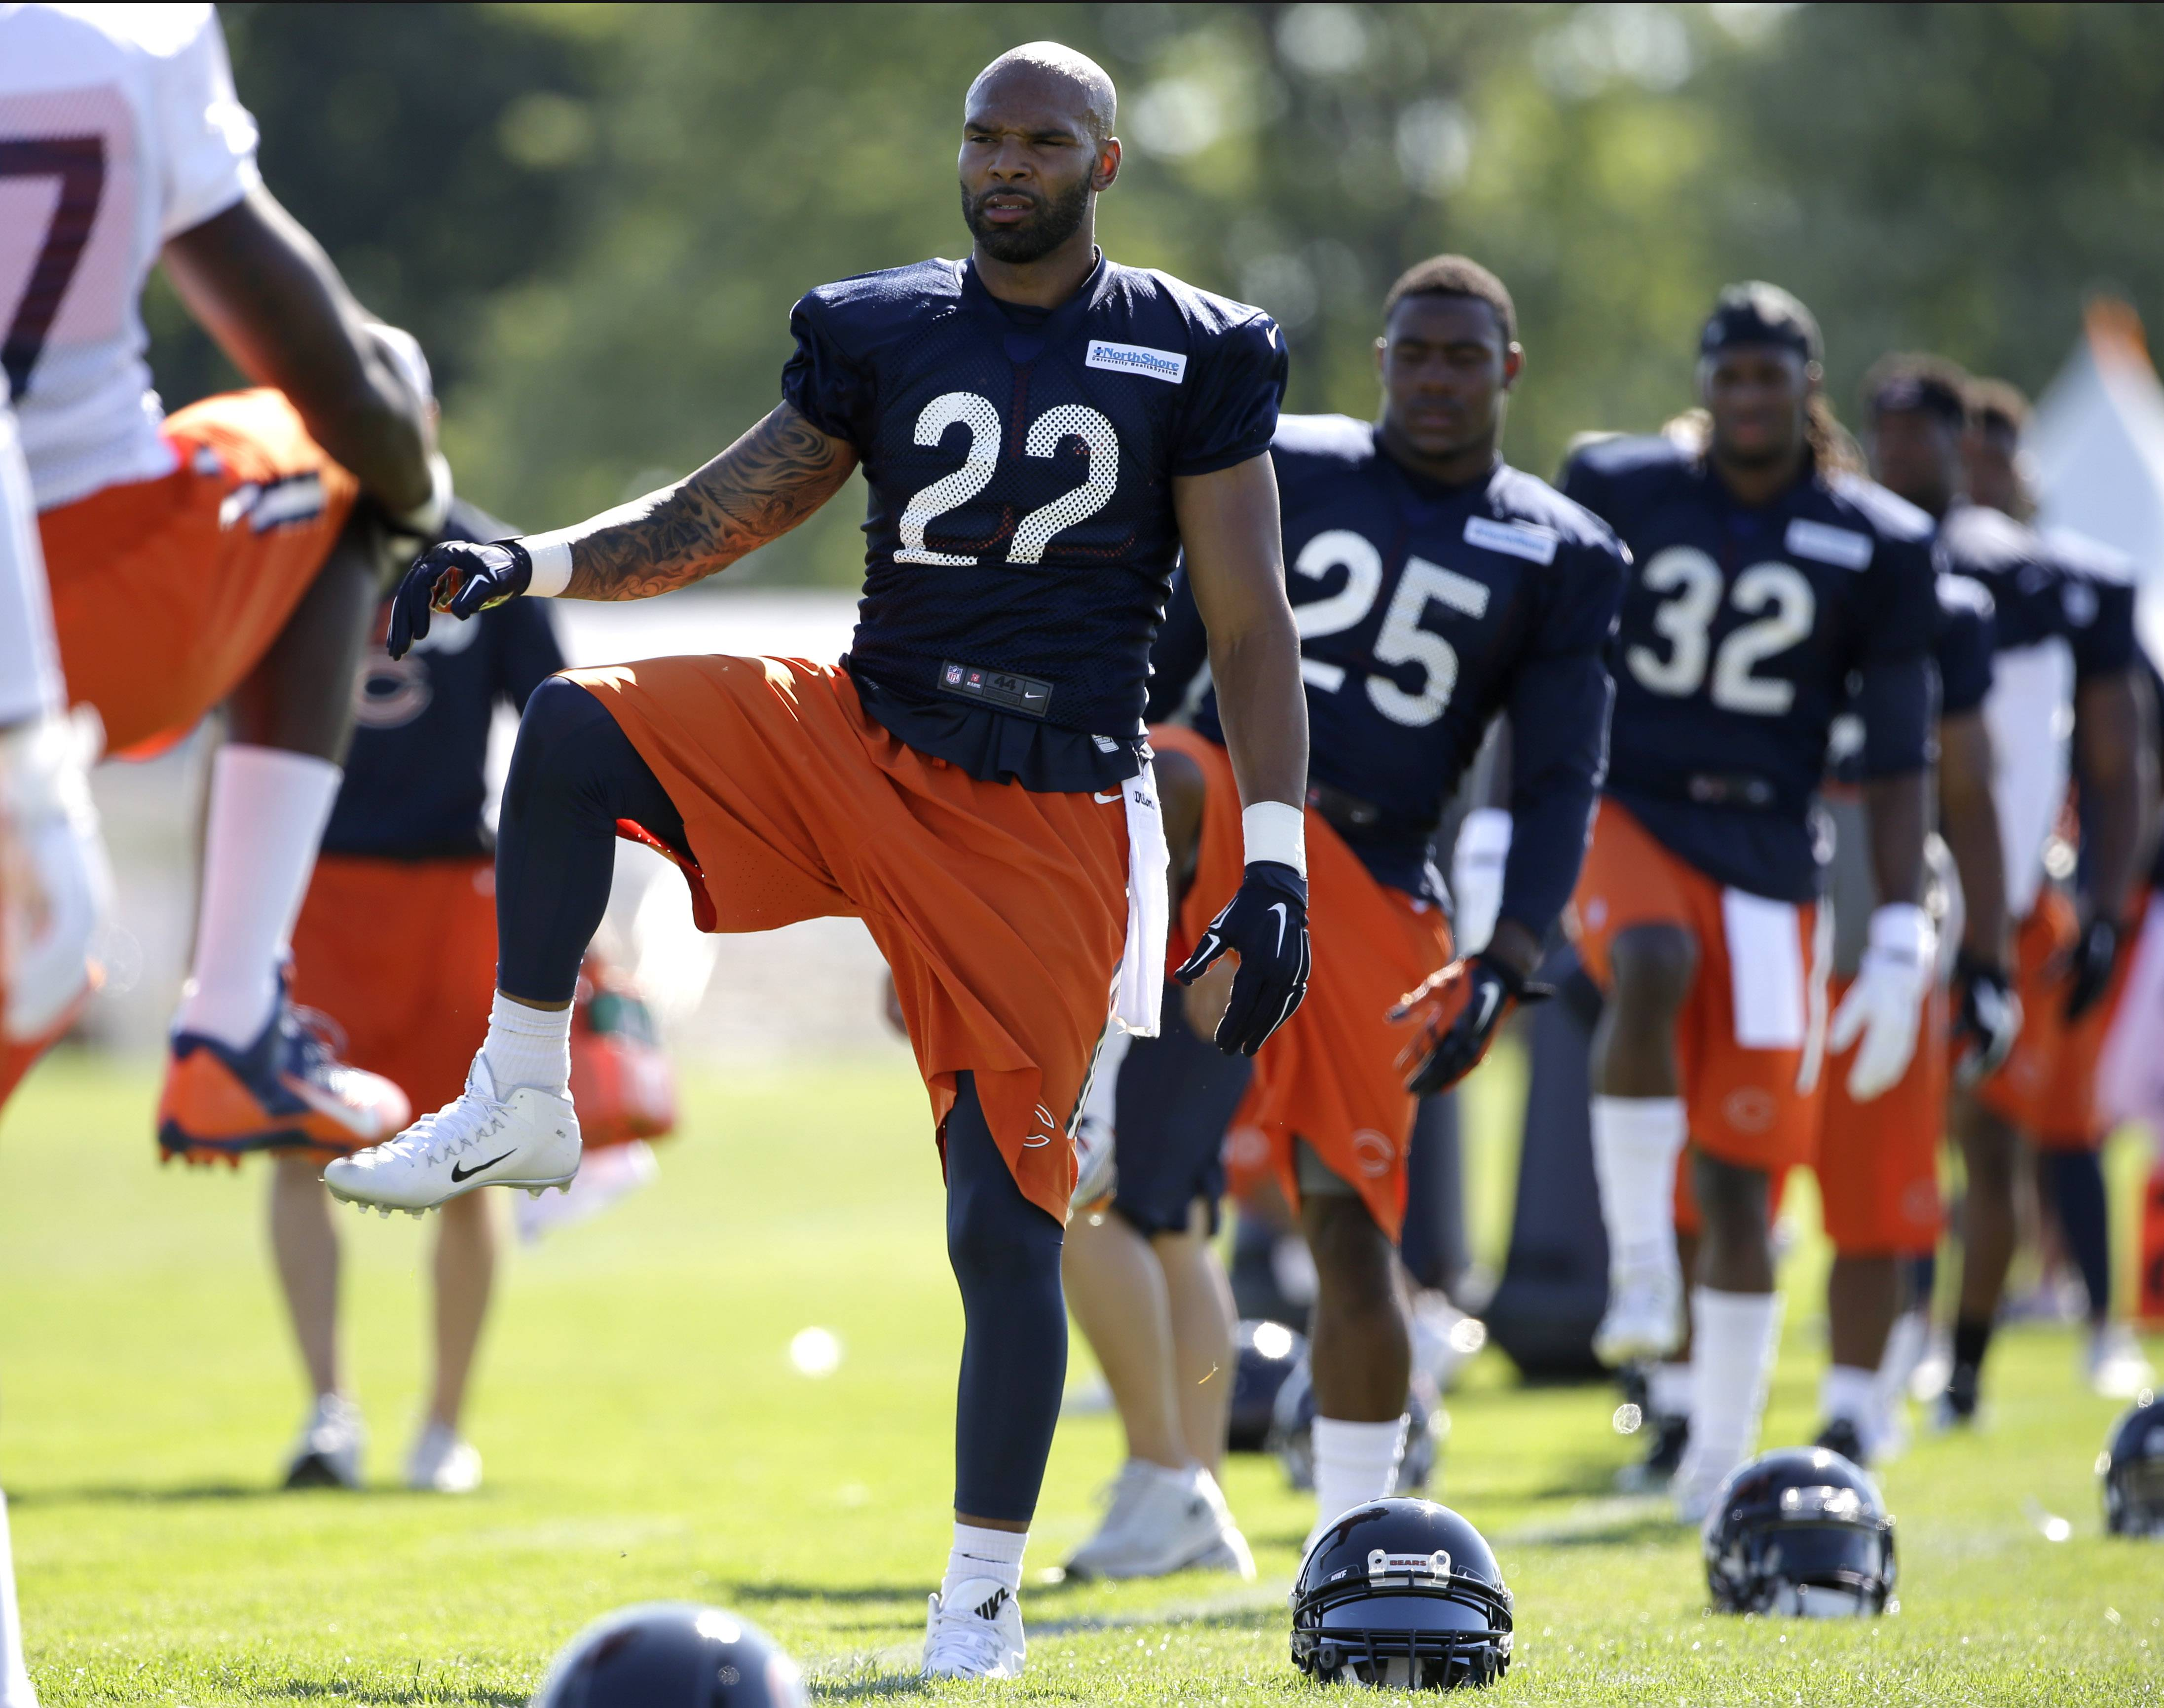 Bears running back Matte Forte stretches with teammates as practice for a new season gets underway Thursday at training camp in Bourbonnais.